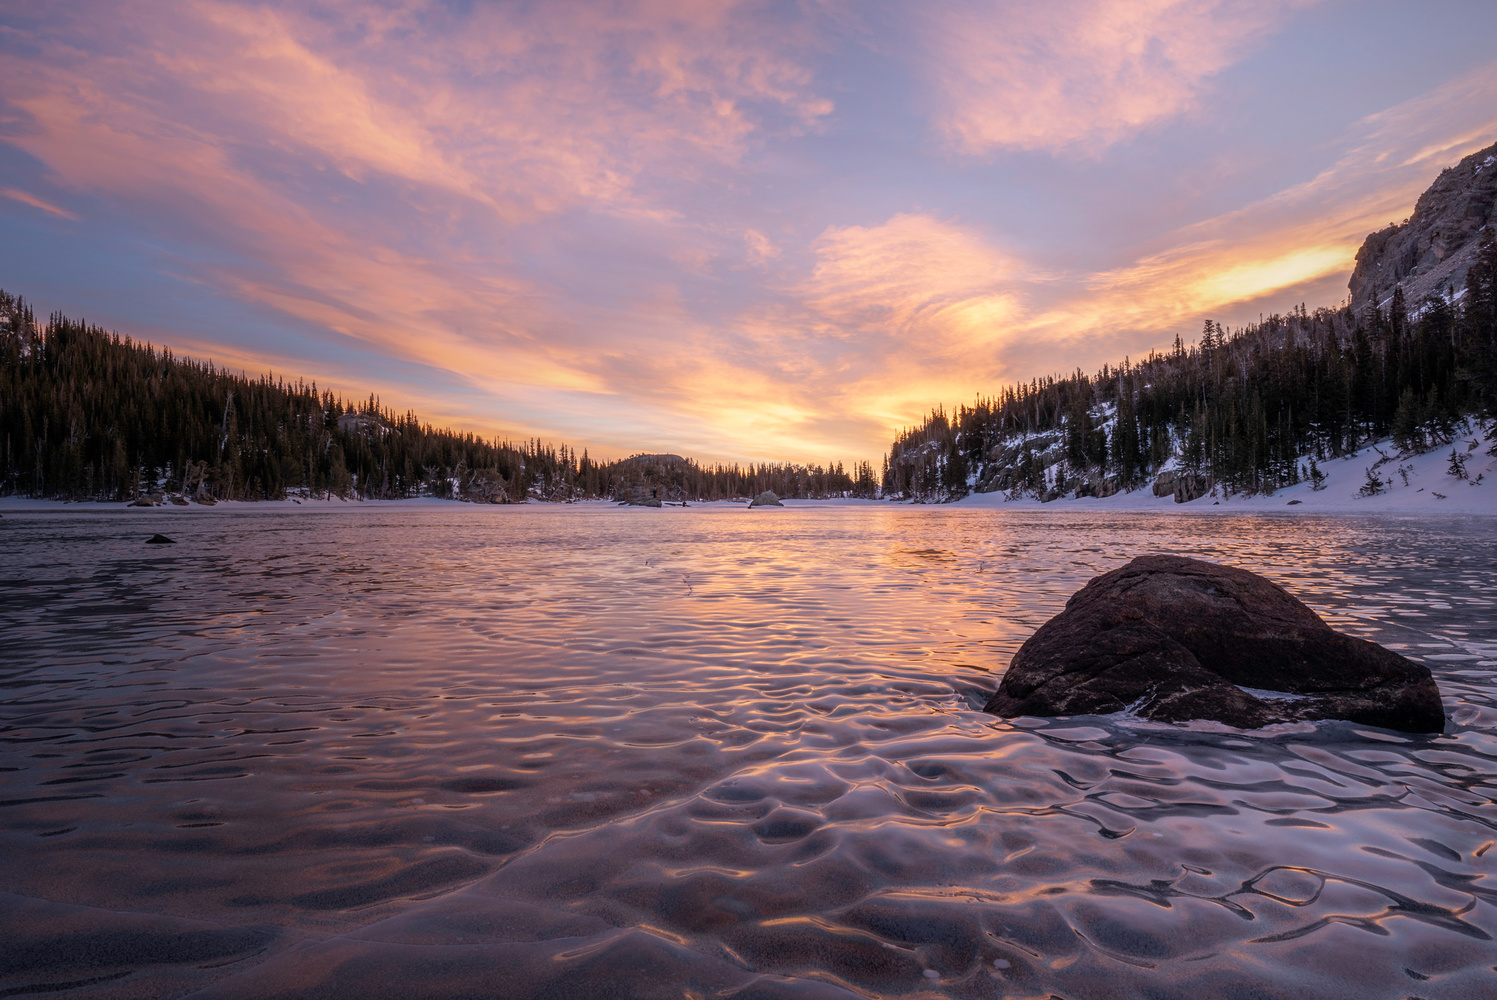 Sunrise at The Loch - Rocky Mountain National Park by Dave Spates